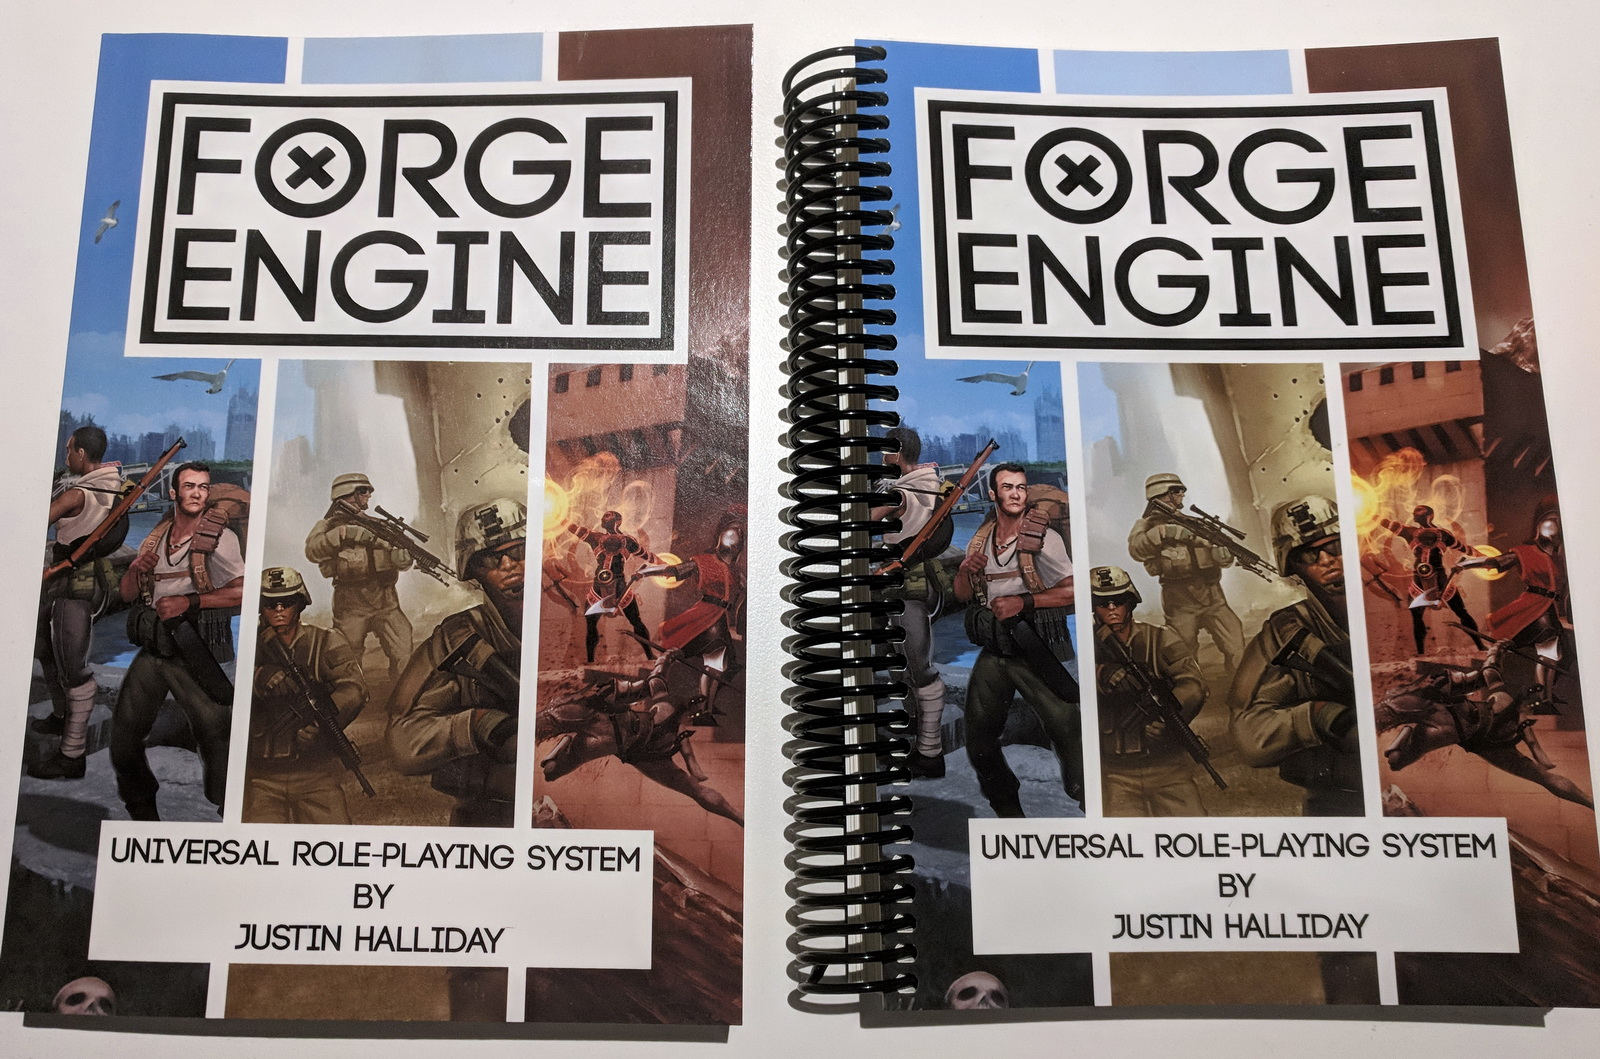 Forge Engine editions